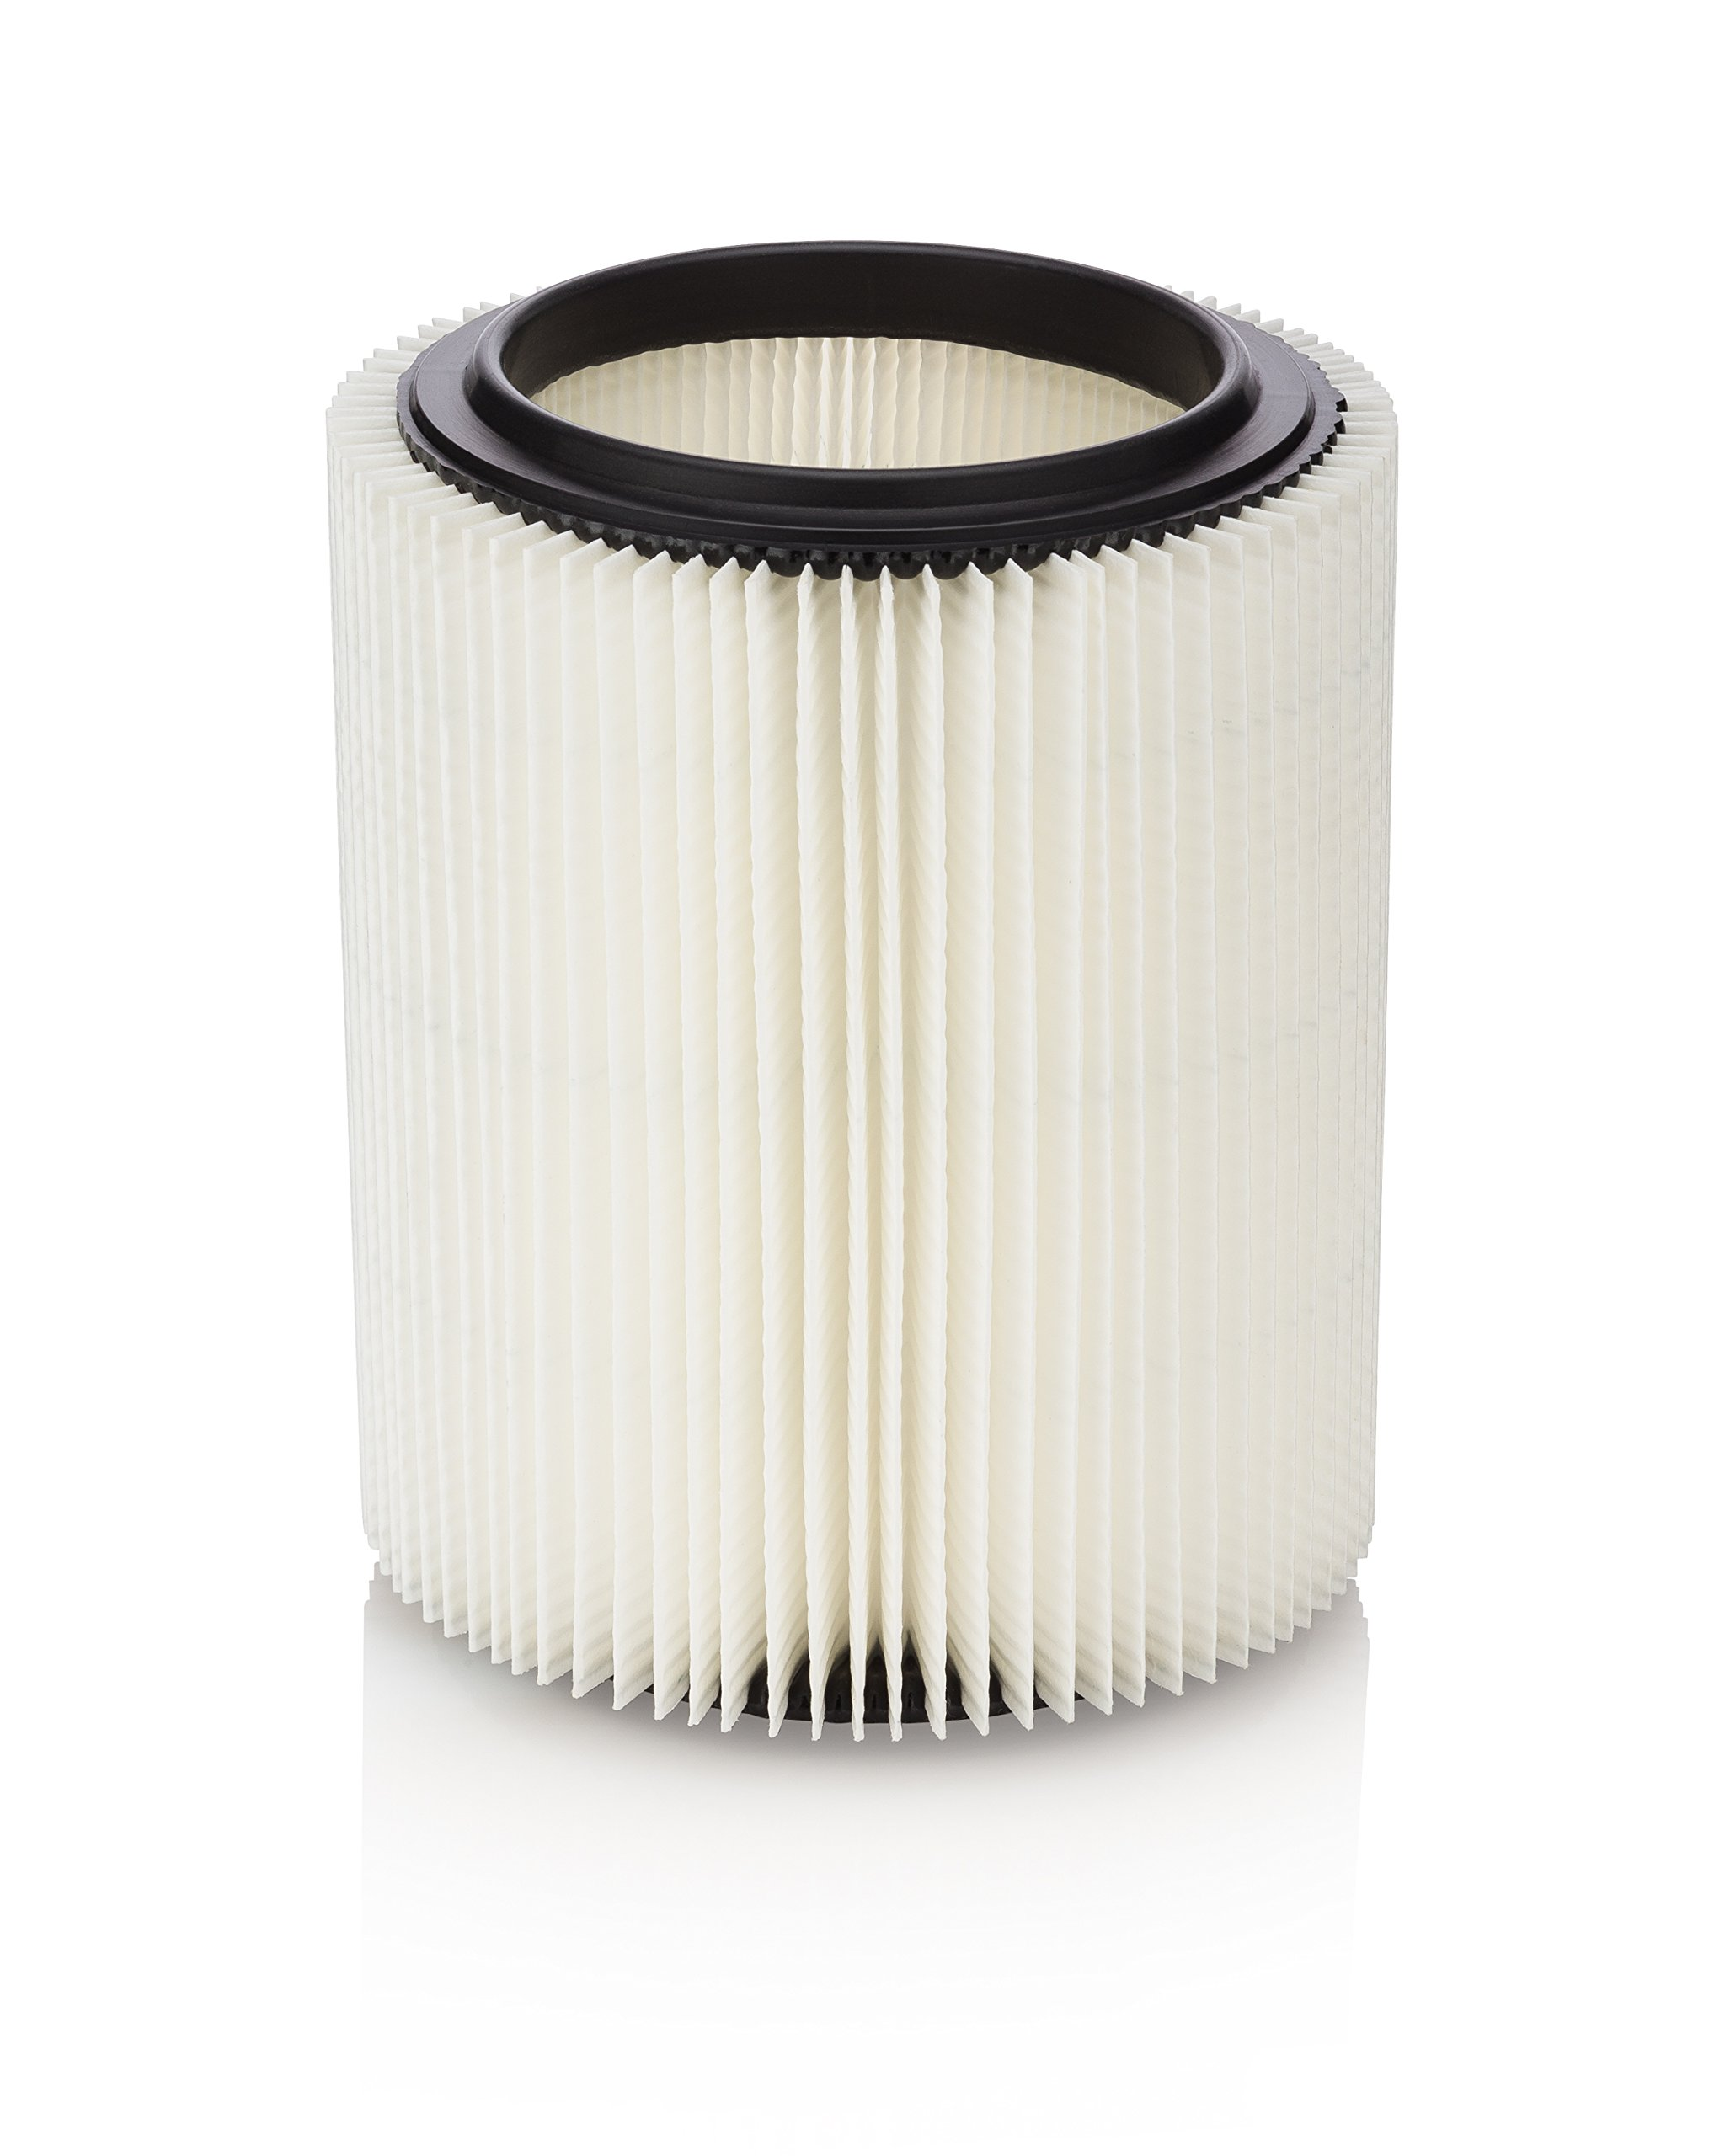 Kopach Replacement Filter for Craftsman and Ridgid Shop Vacs Part # 9-17816 & Part # VF4000, 4 Pack, Original Filter by Kopach Filter